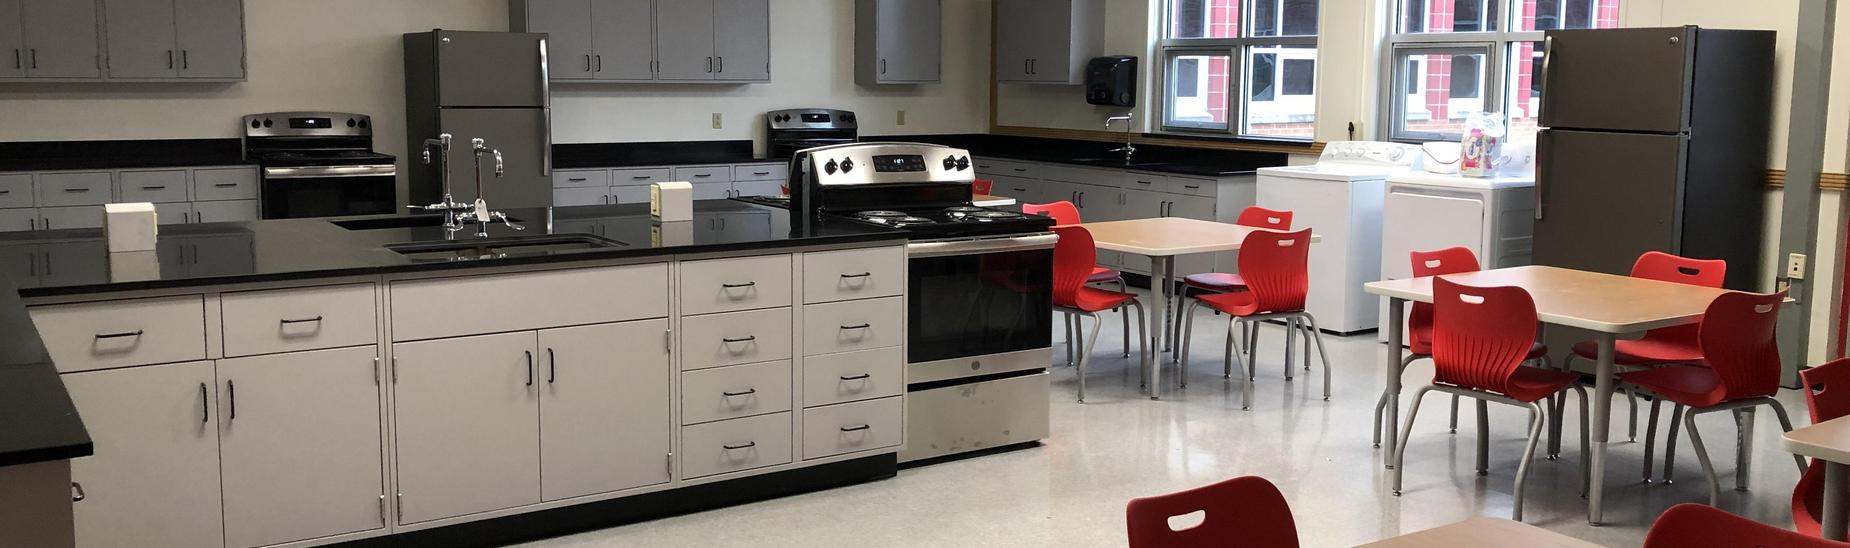 Newly Renovated CHS Family Consumer Science Classroom